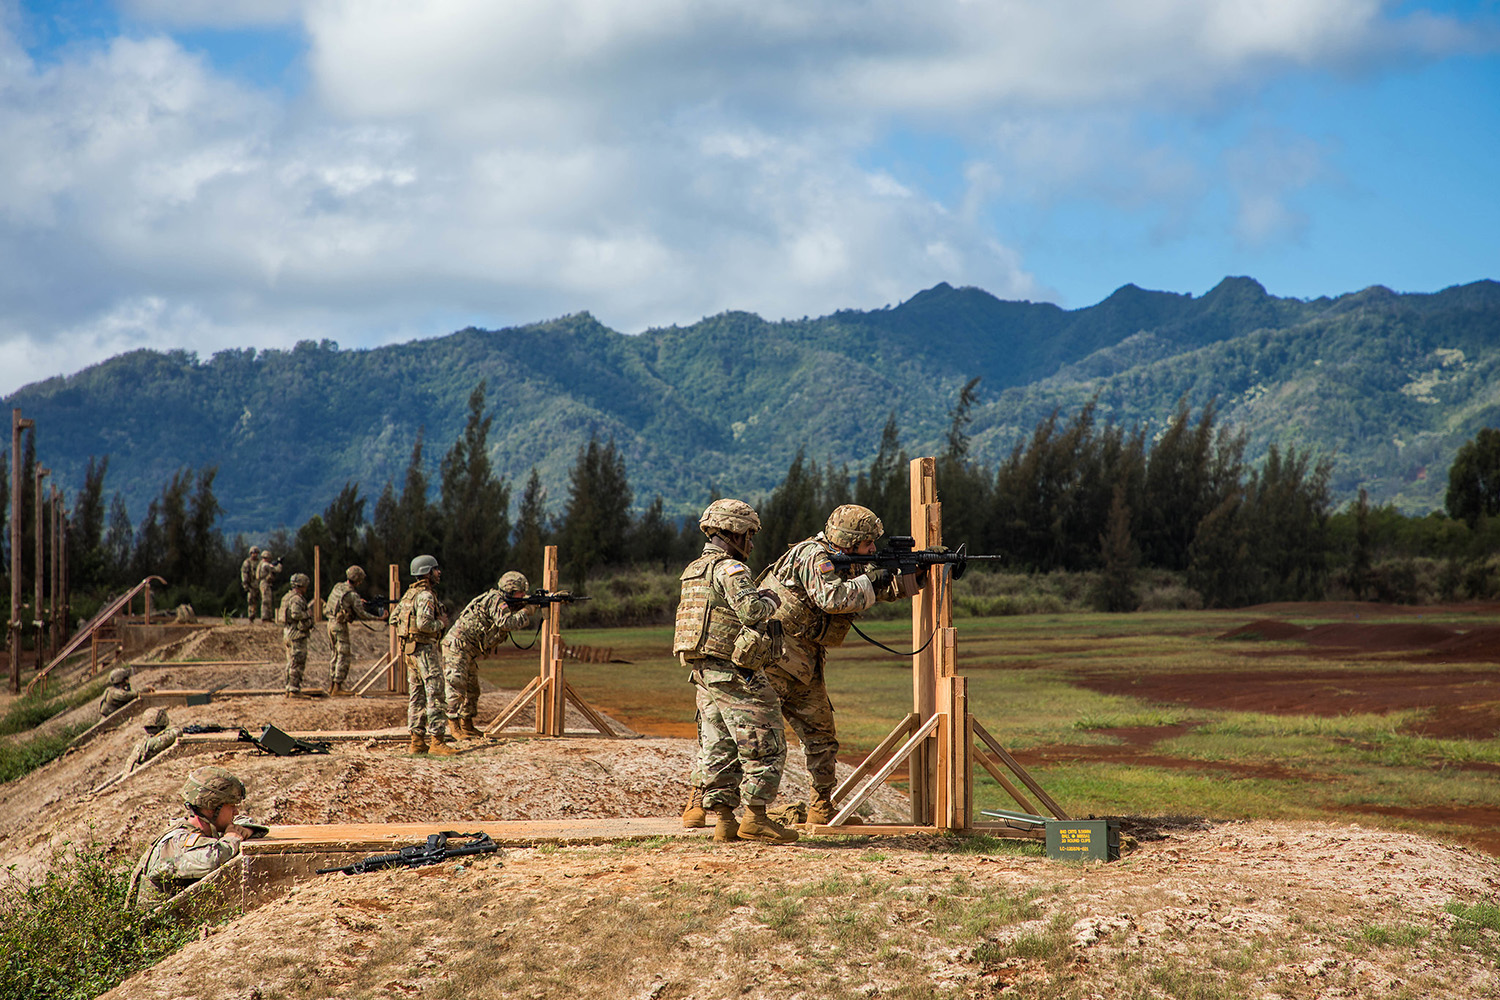 Soldiers across the 25th Infantry Division prepared for the new marksmanship standards on Sept. 16, 2019, by conducting a pilot program to assess current installation support capabilities at Schofield Barracks, Hawaii. (Sgt. Sarah D. Sangster/Army)